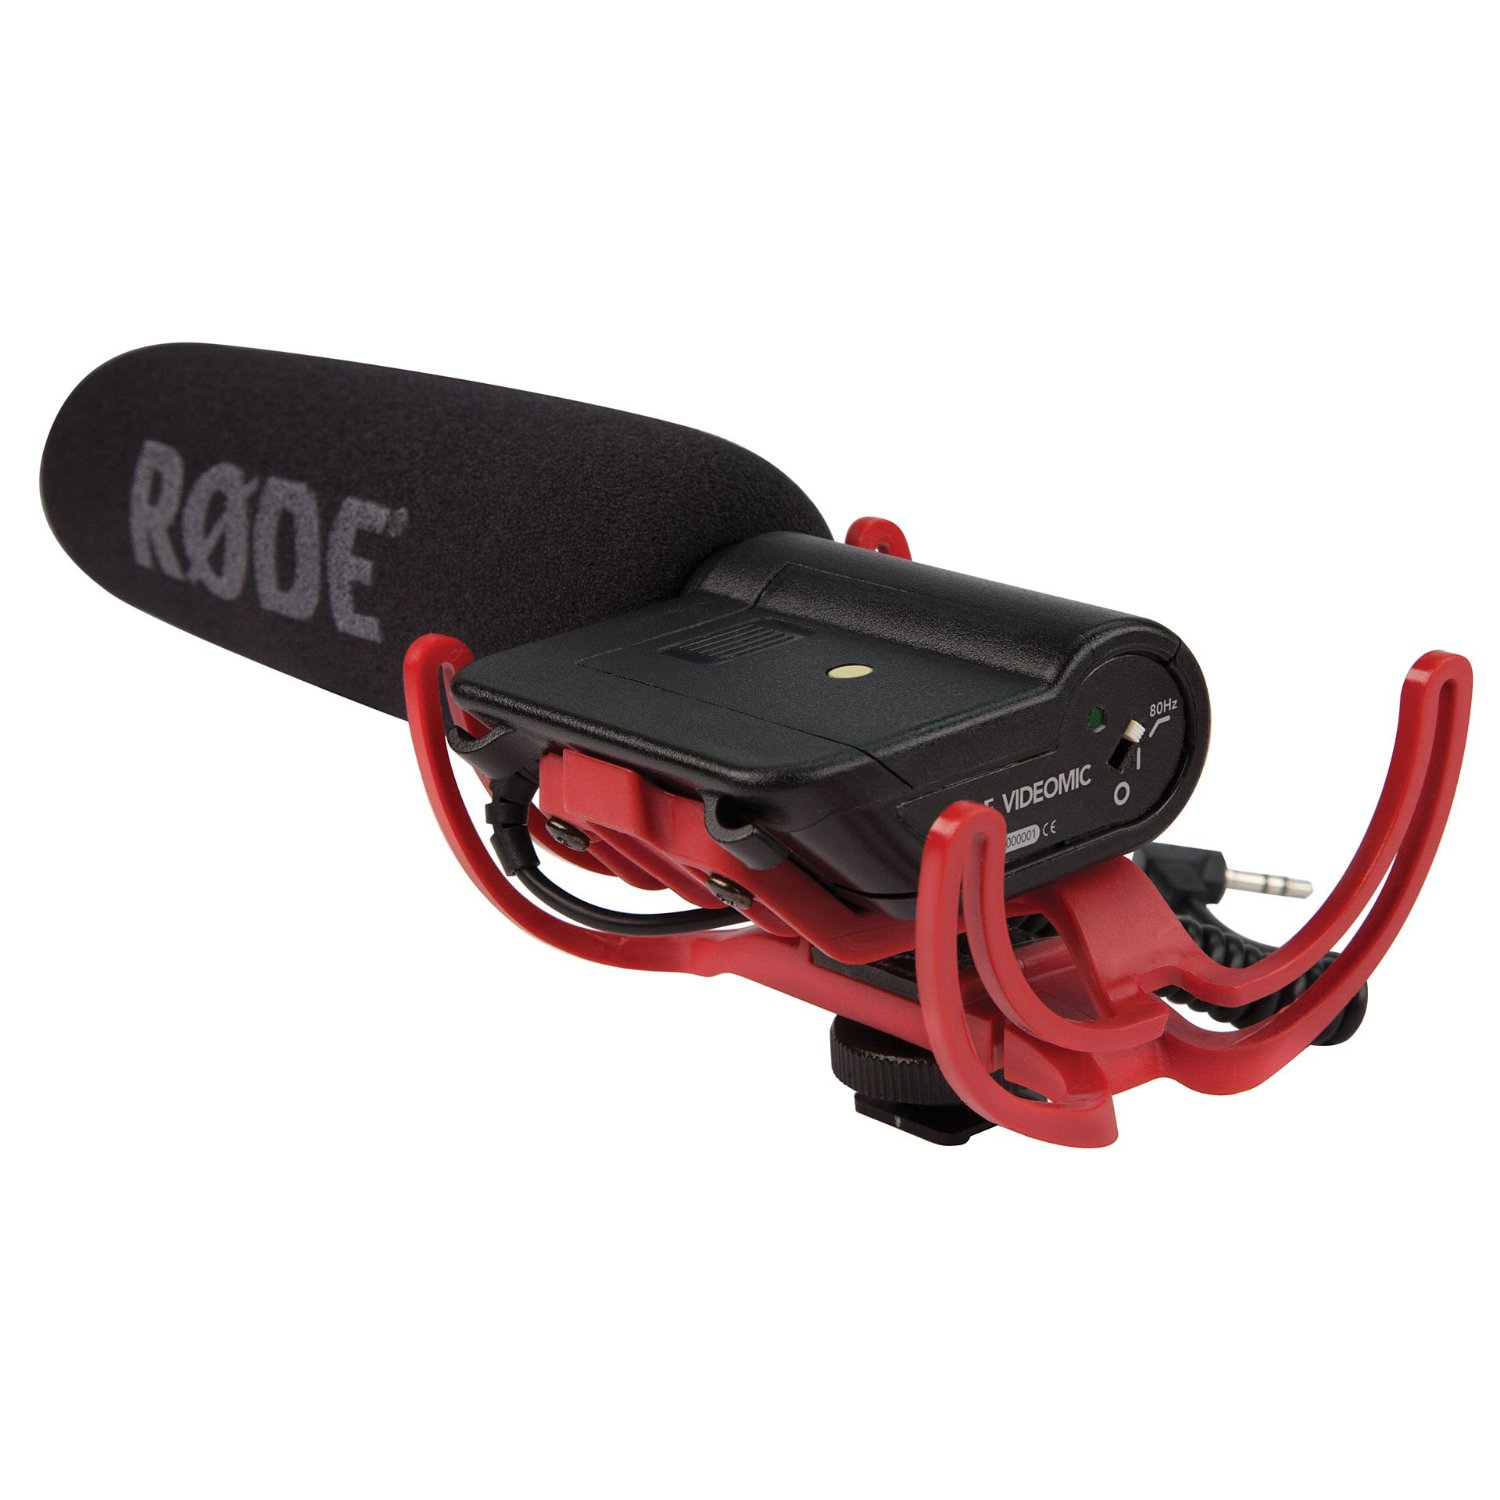 Rode-Rycote-Edition-VideoMic